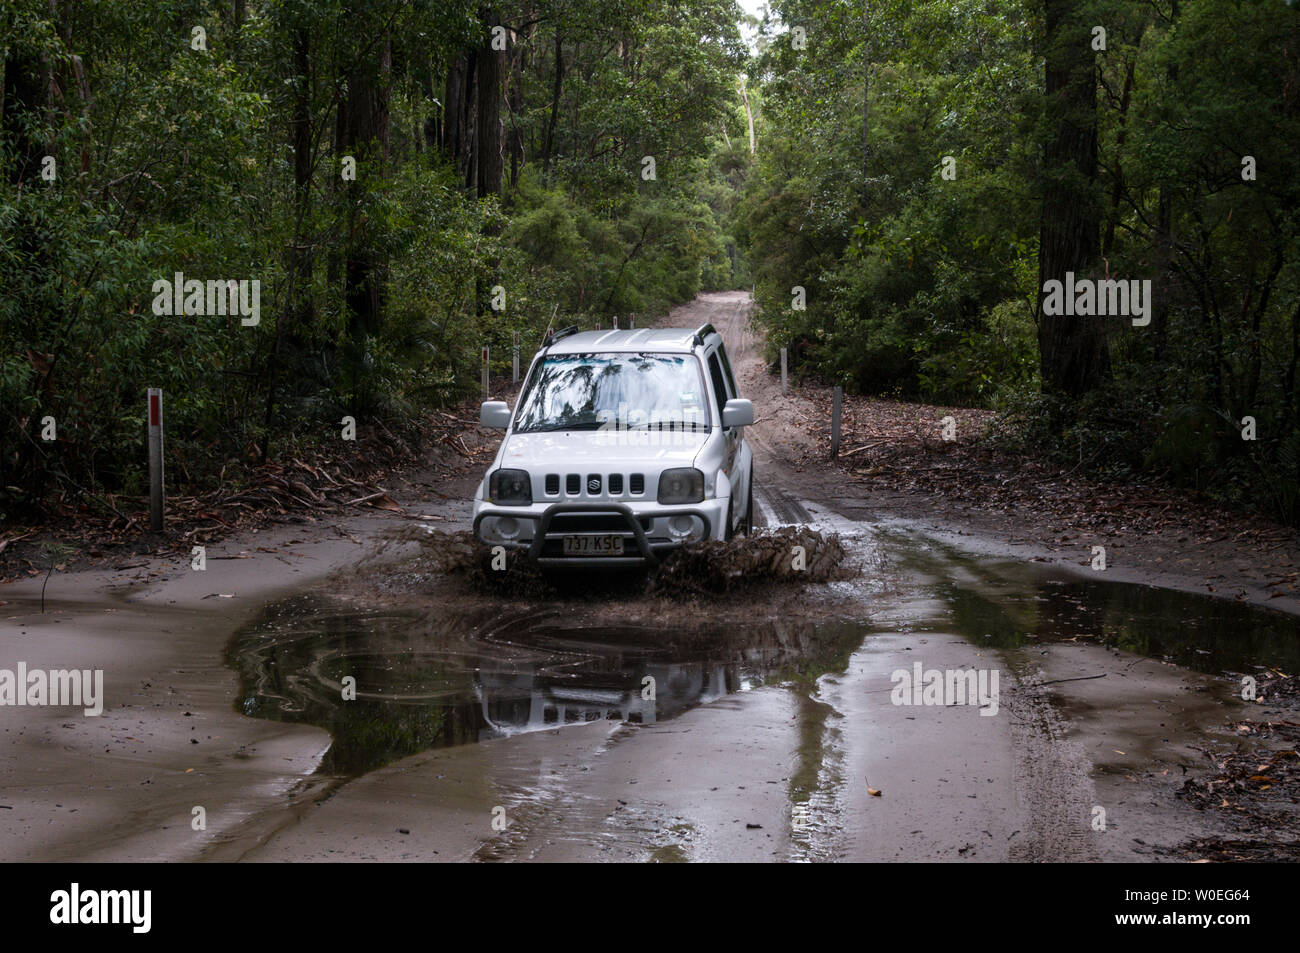 A tourist hired jeep ploughs through some of the deep puddles being along a muddy sandy track after a night of tropical storms, in the rain forest on Stock Photo